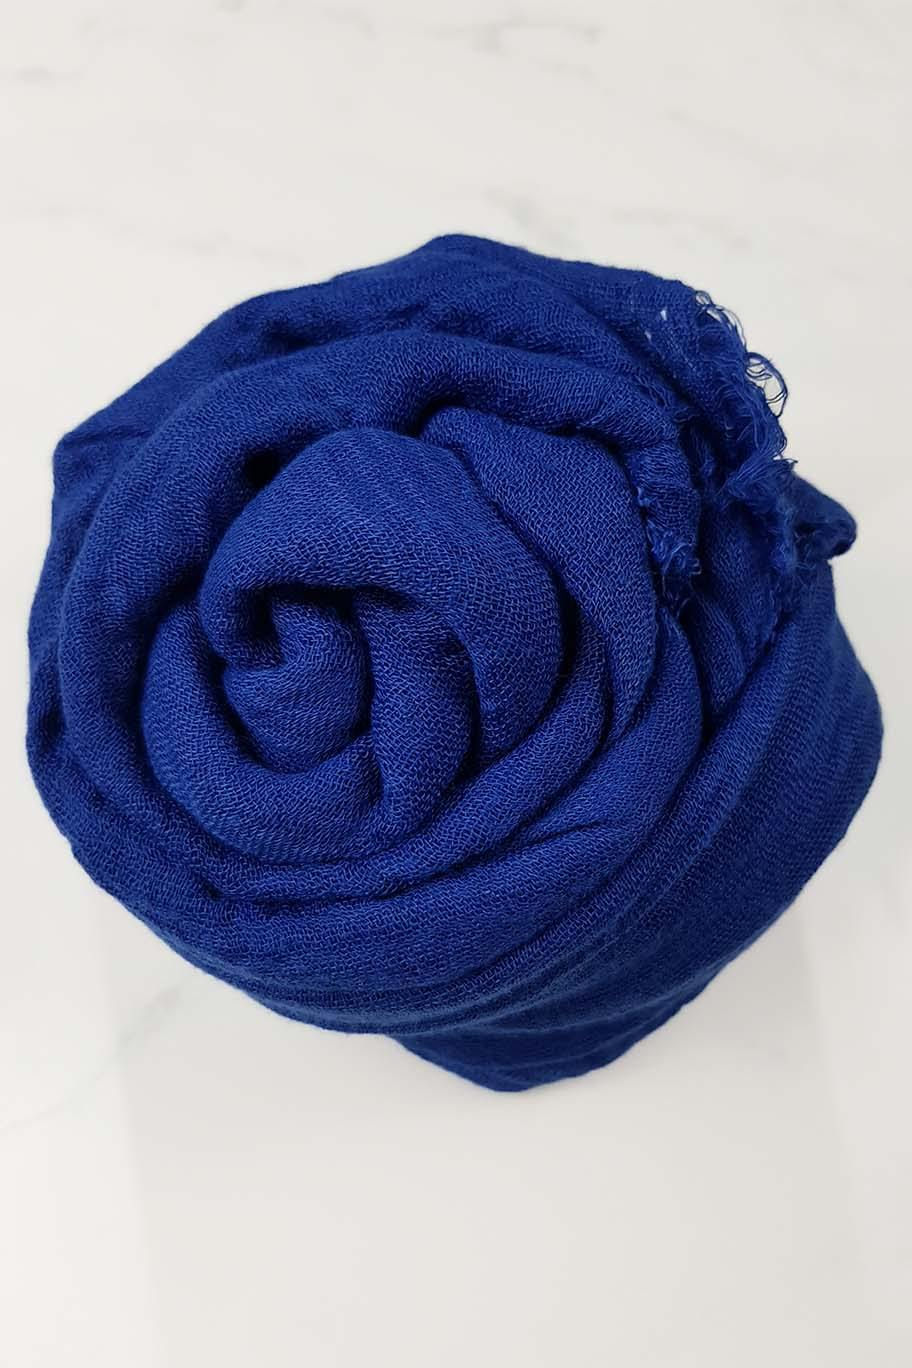 Sapphire Blue Crinkle Cotton - Crinkle Cotton Hijabs - The Modest Look